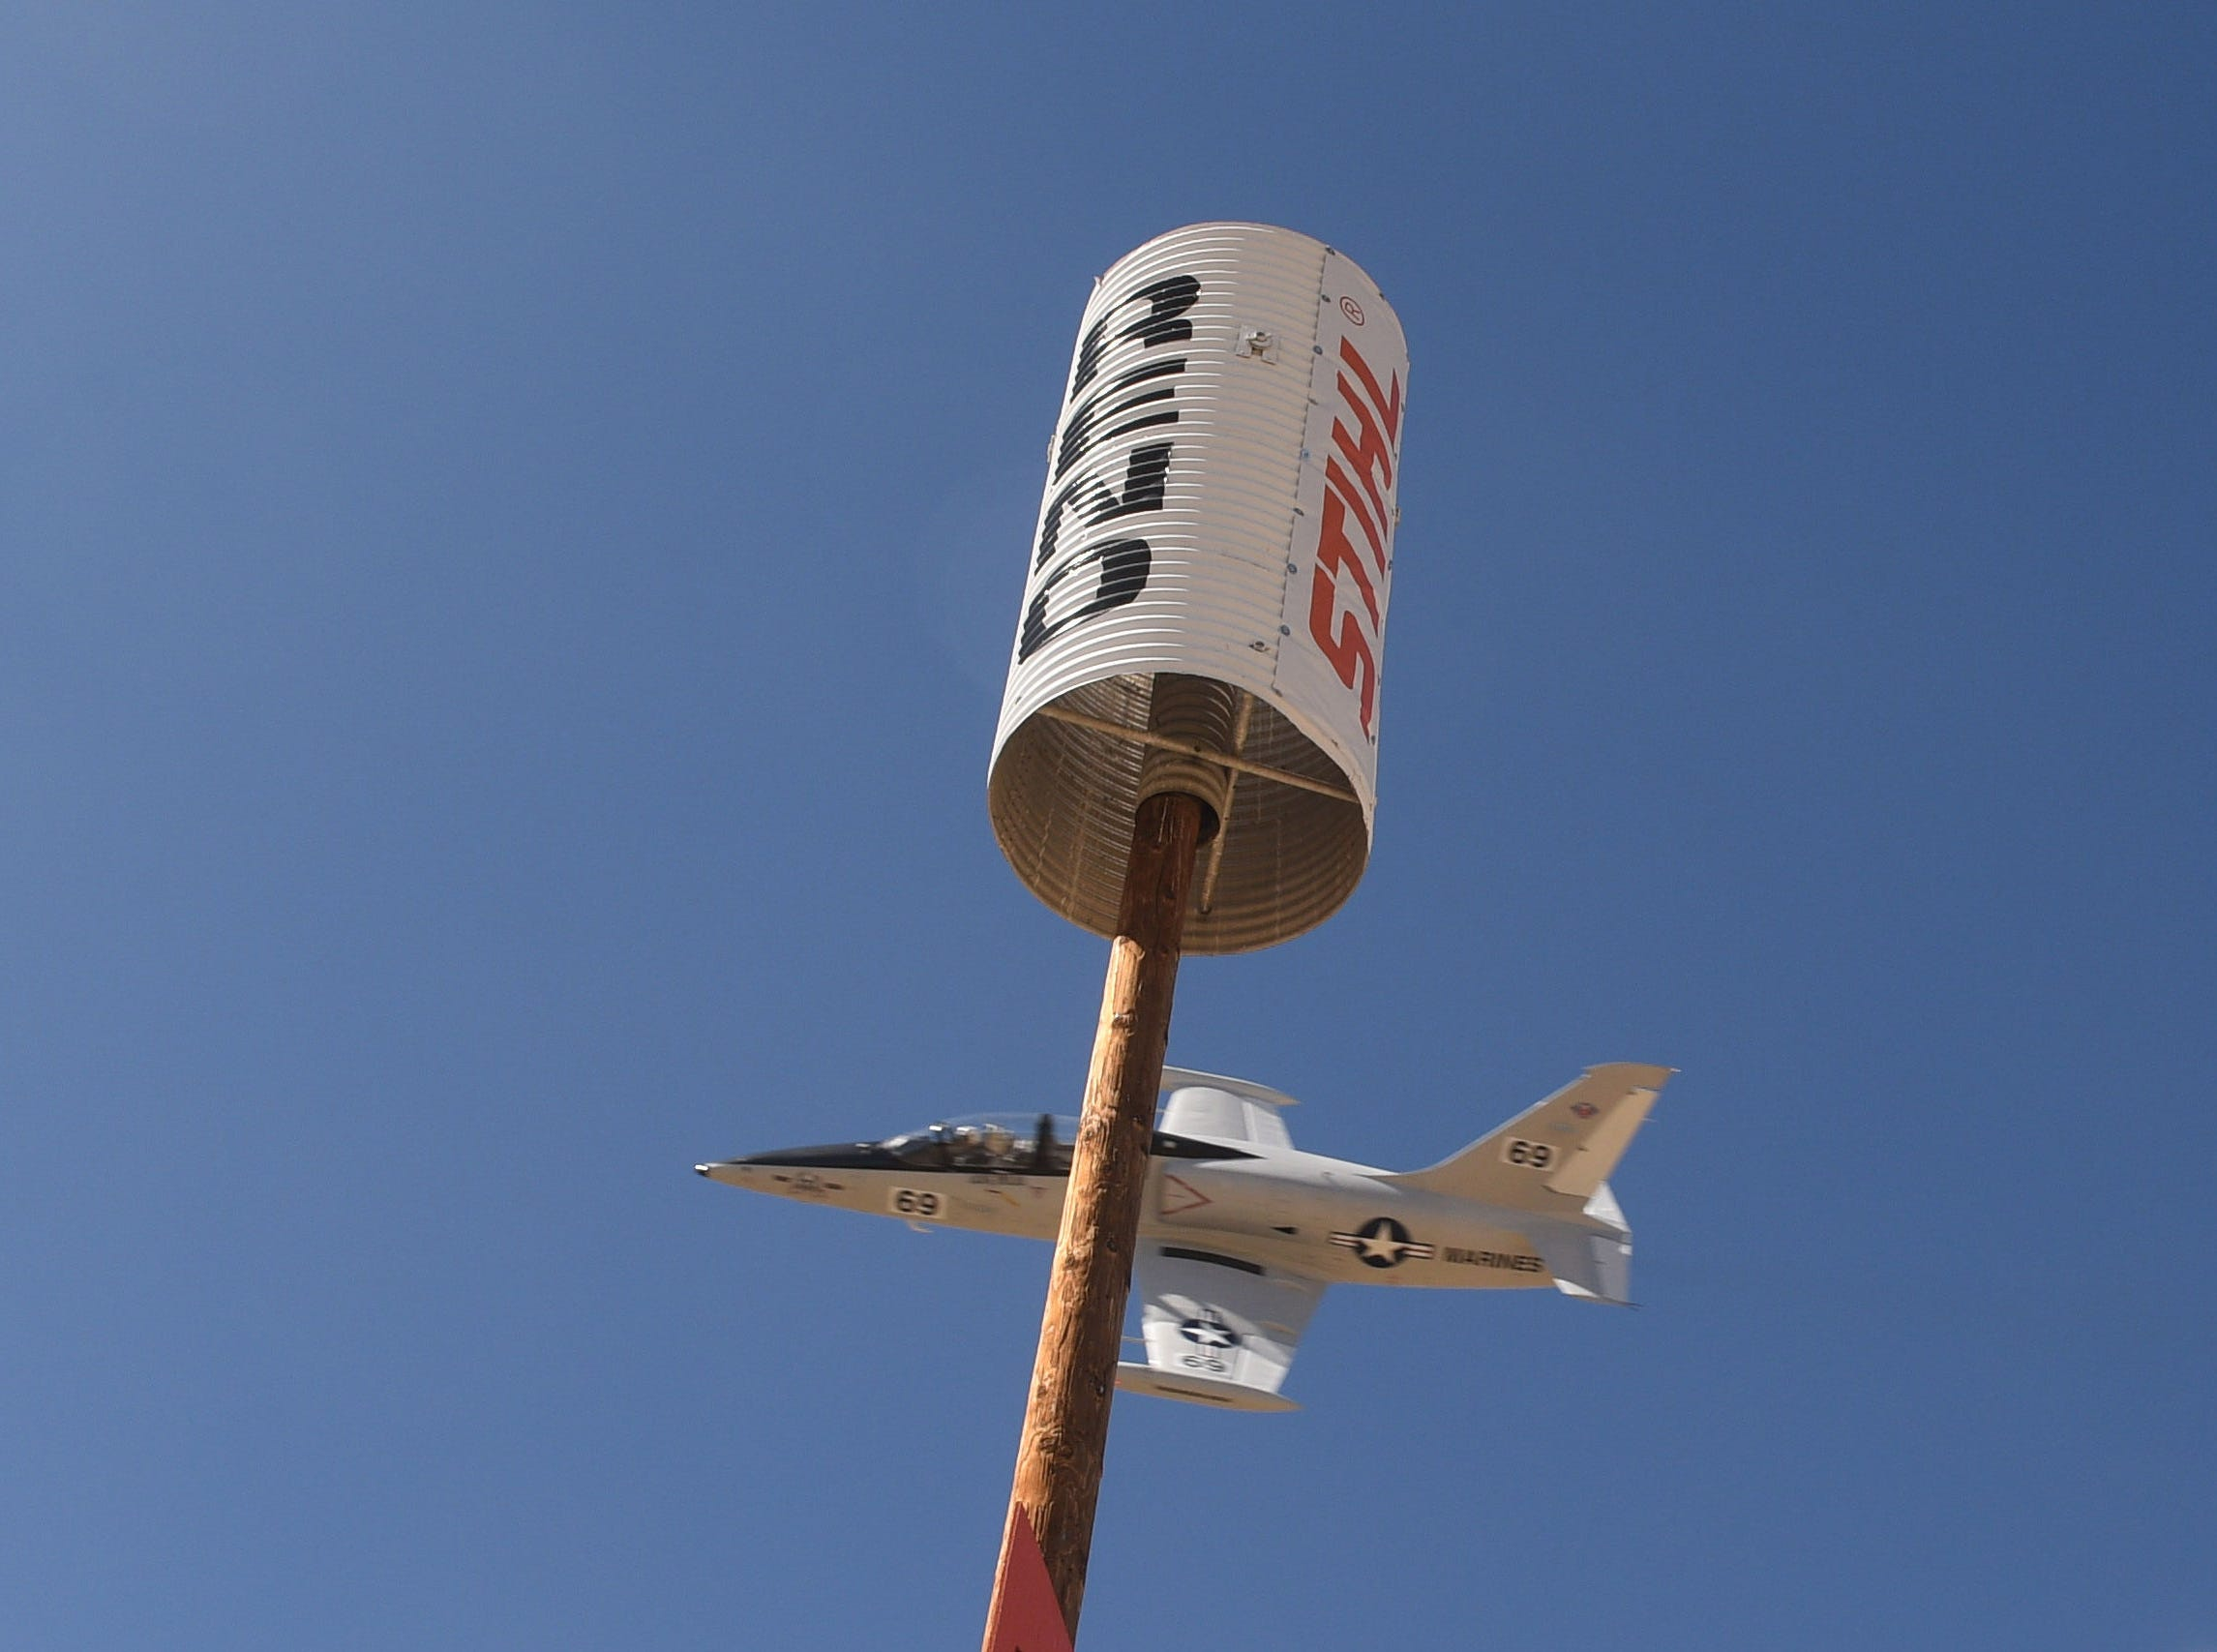 The STIHL National Championship Air Races at Stead Airport north of Reno on Sept. 13, 2018.